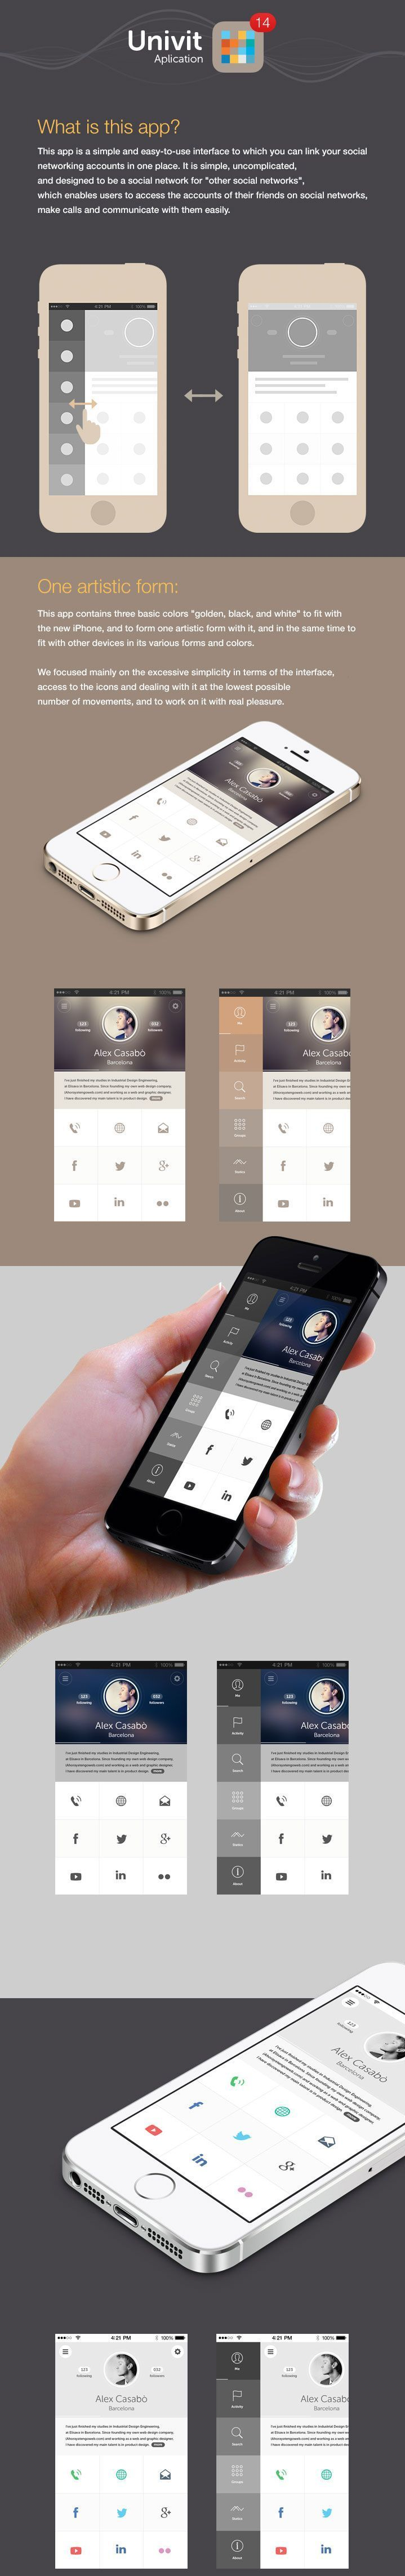 Inspiration mobile #1 : des applications et du web design ! | BlogDuWebdesign